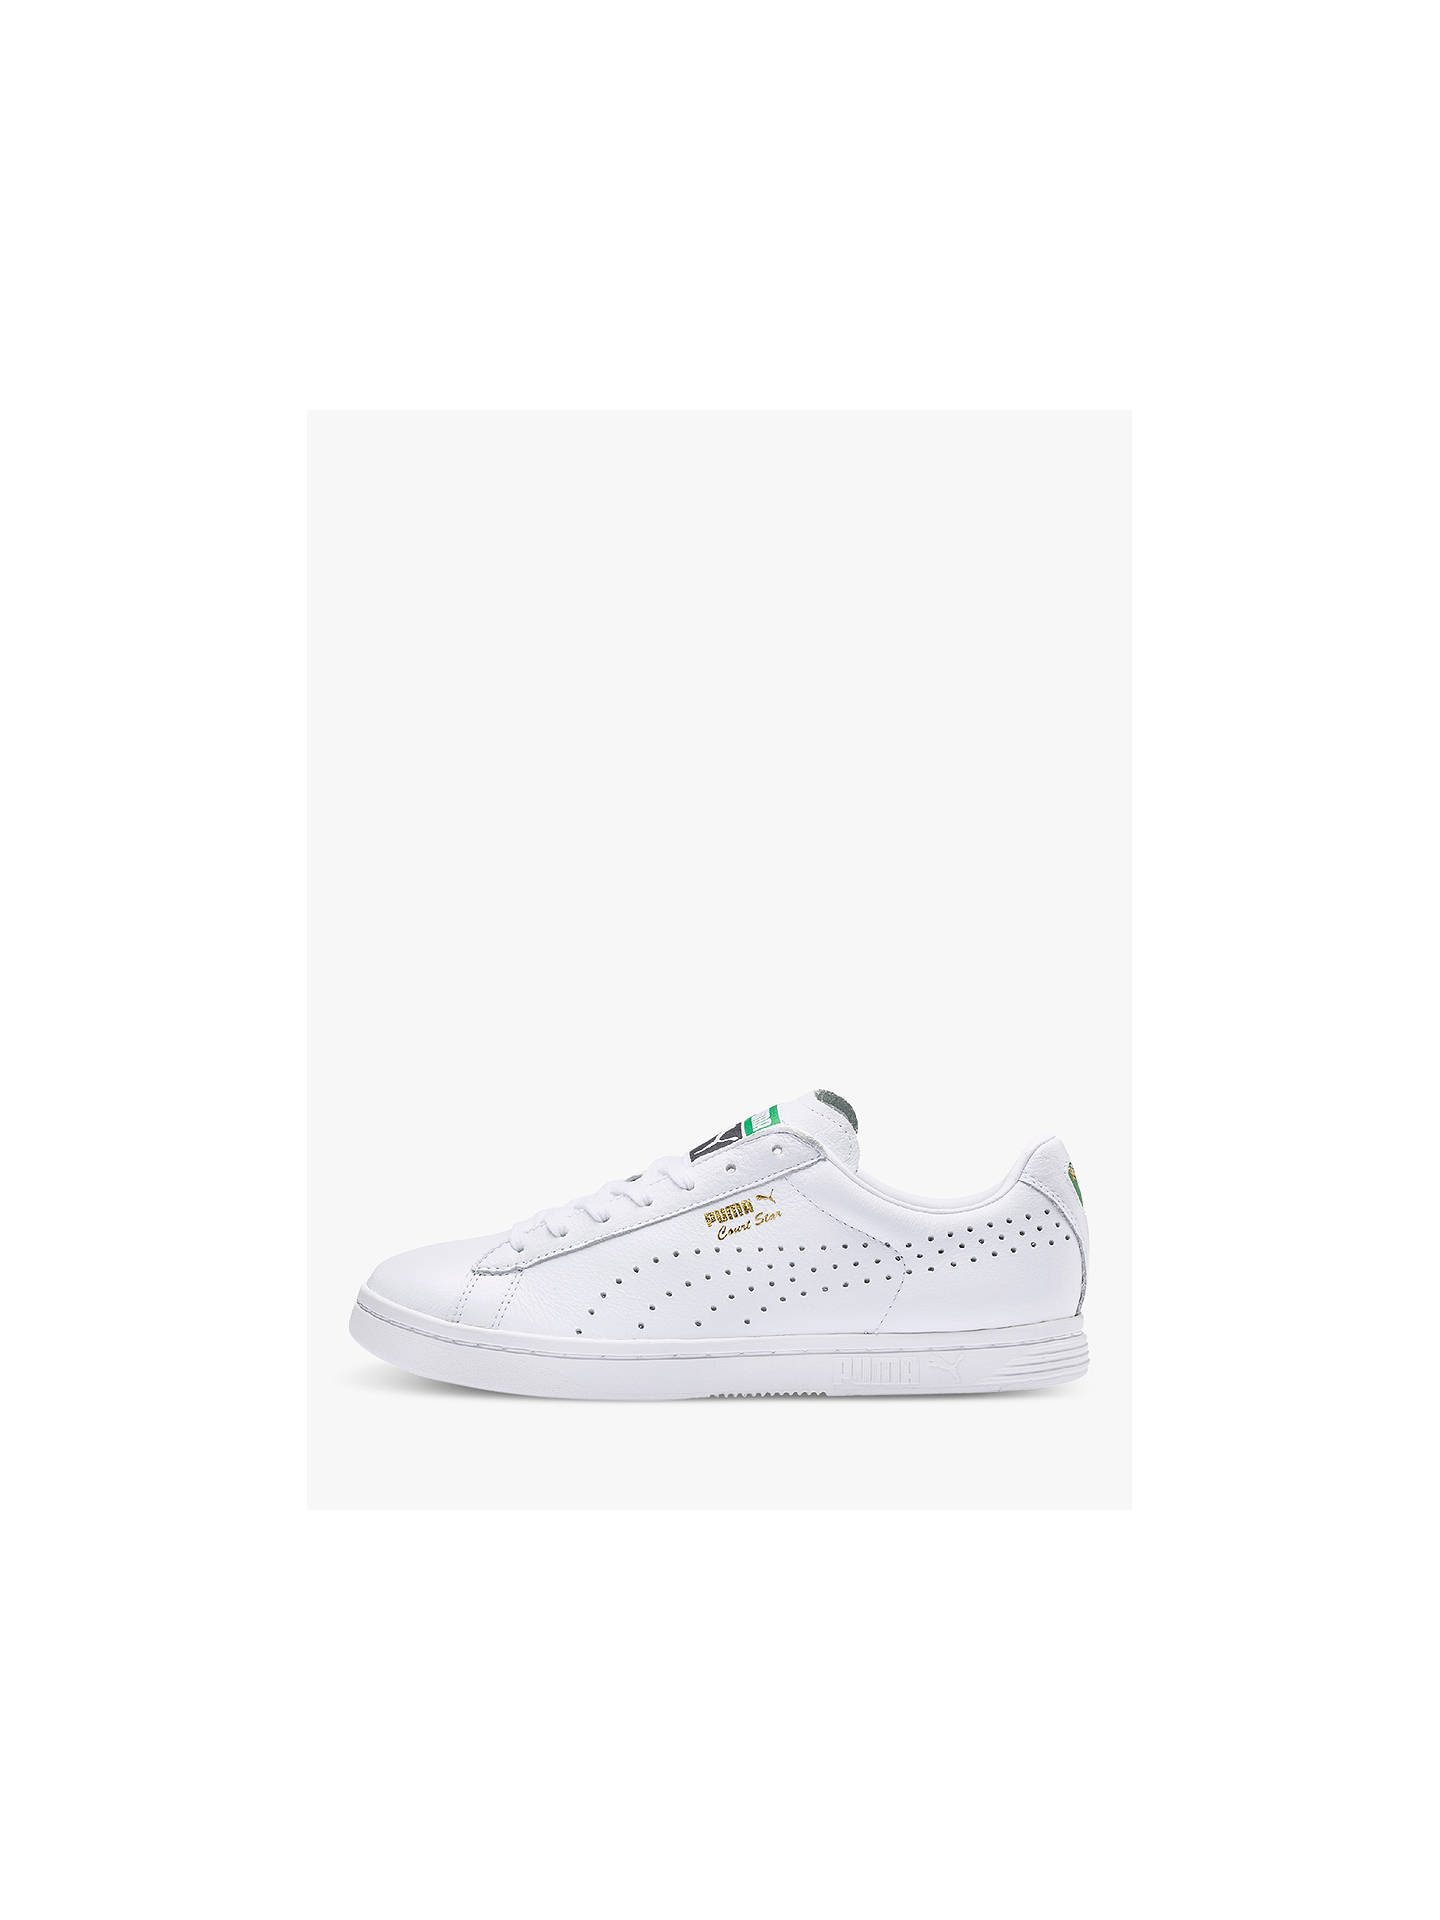 separation shoes 425fd 9079f PUMA Court Star Men's Trainers, White